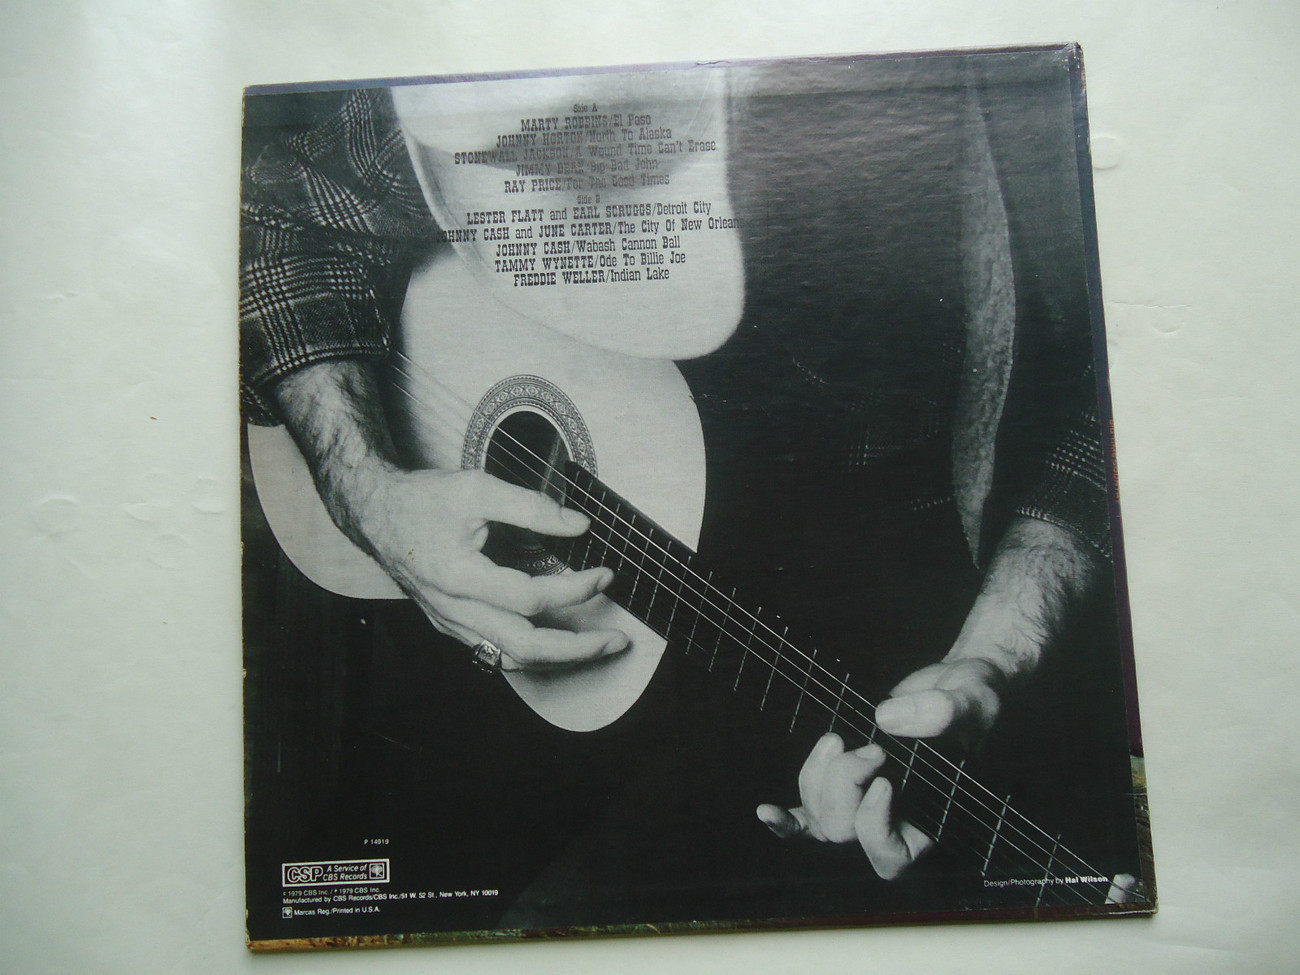 BIG TIME COUNTRY Johny Cash & Others